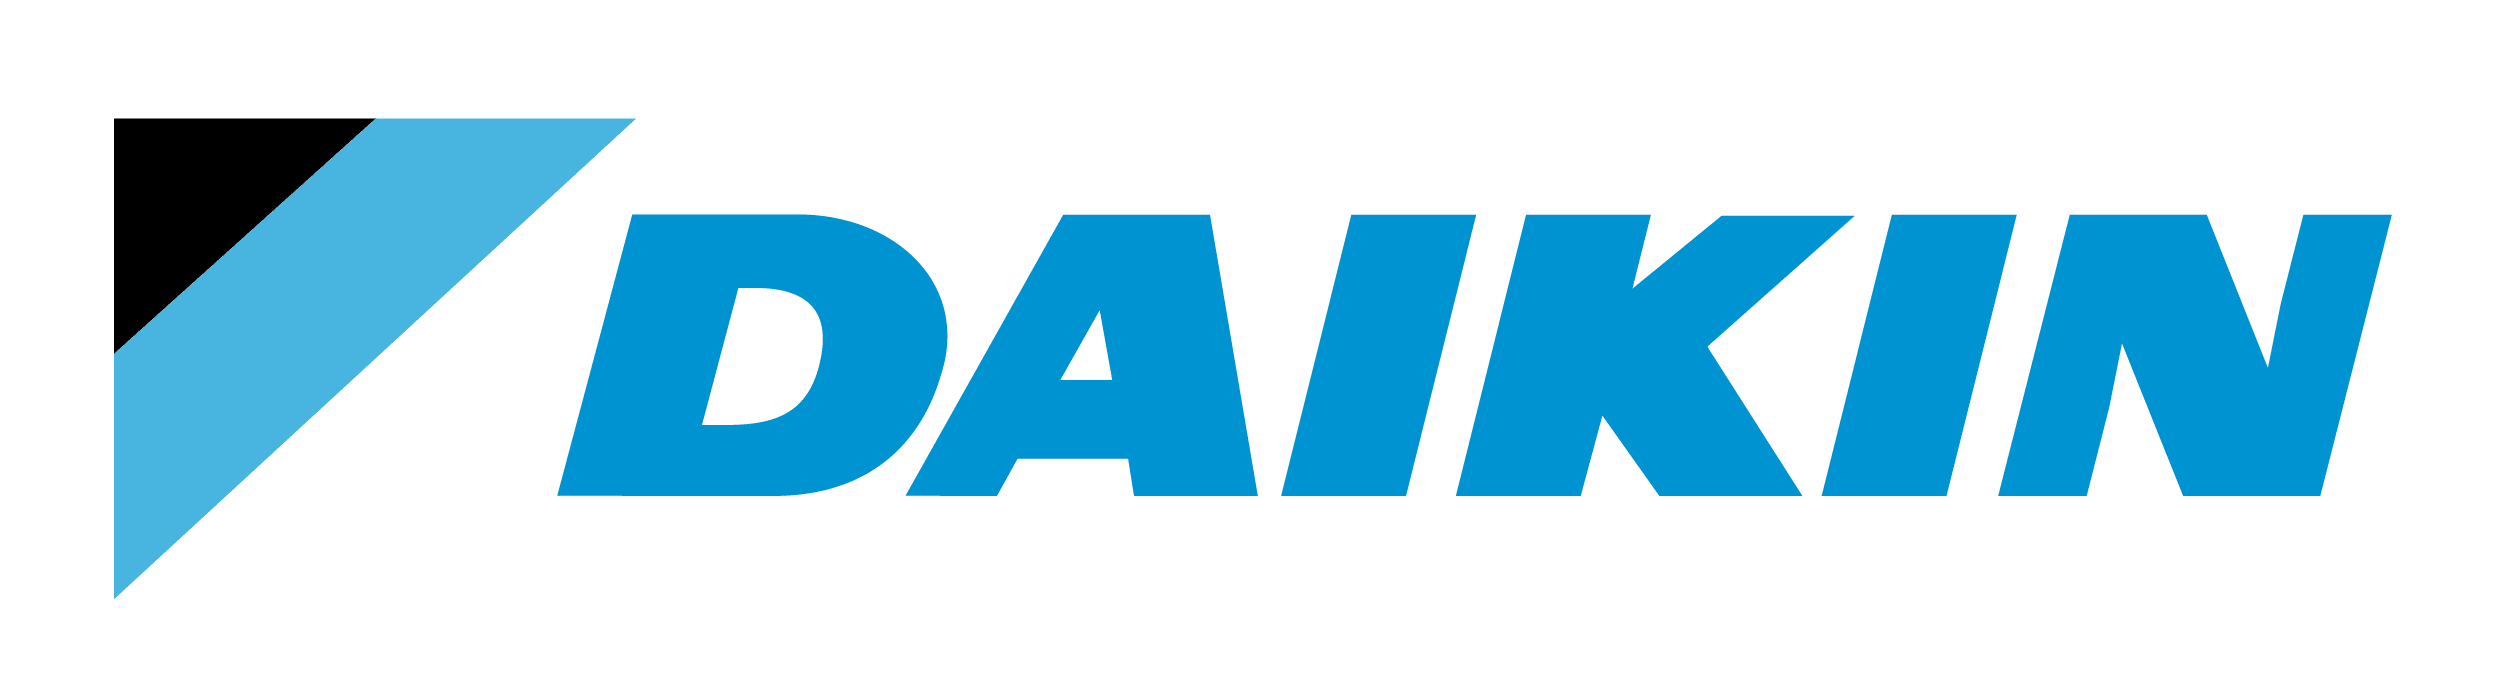 Daikin Ducted Air Conditioning